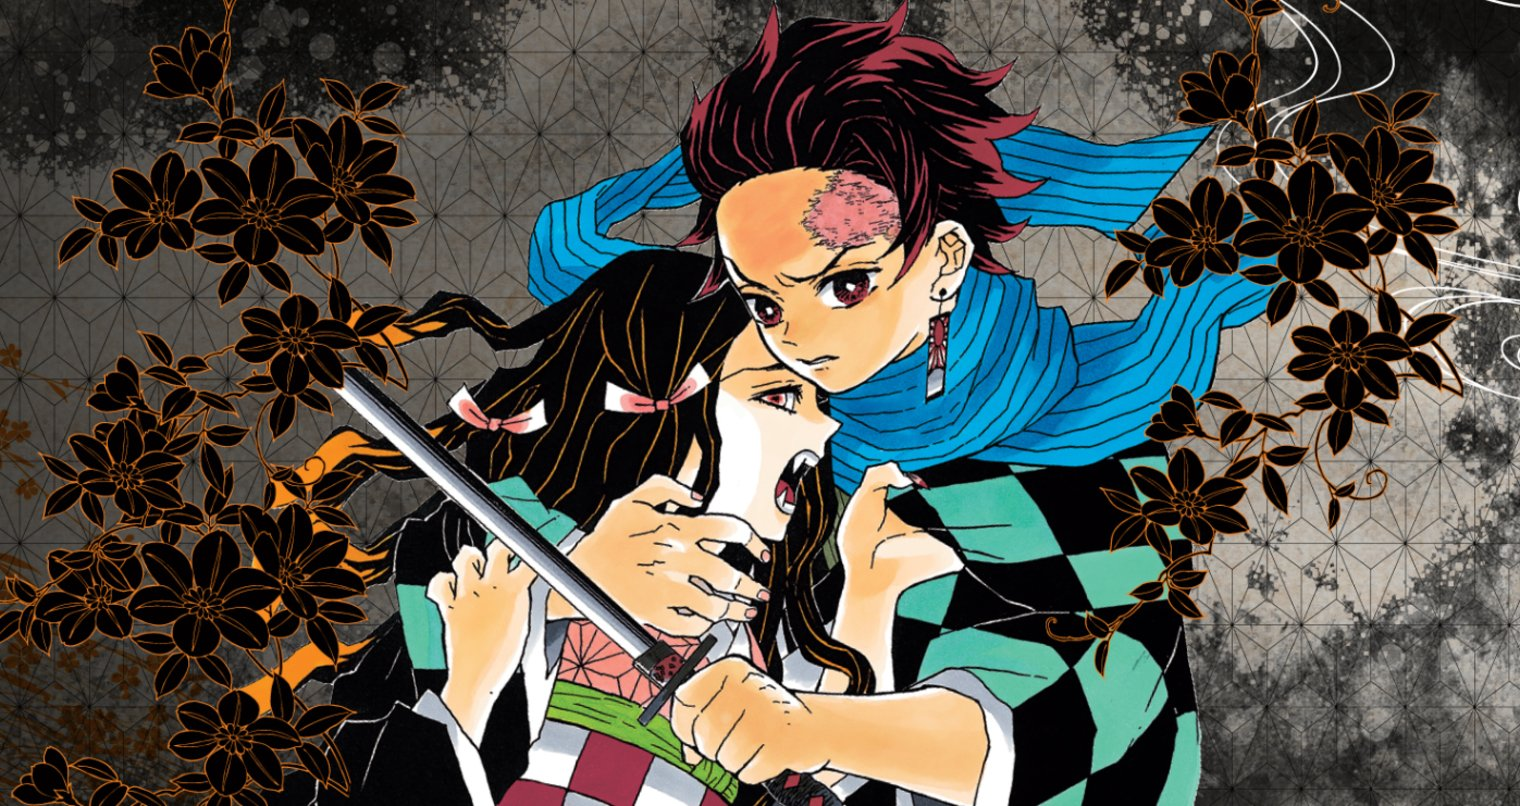 Kimetsu no Yaiba, Demon Slayer Chapter 197